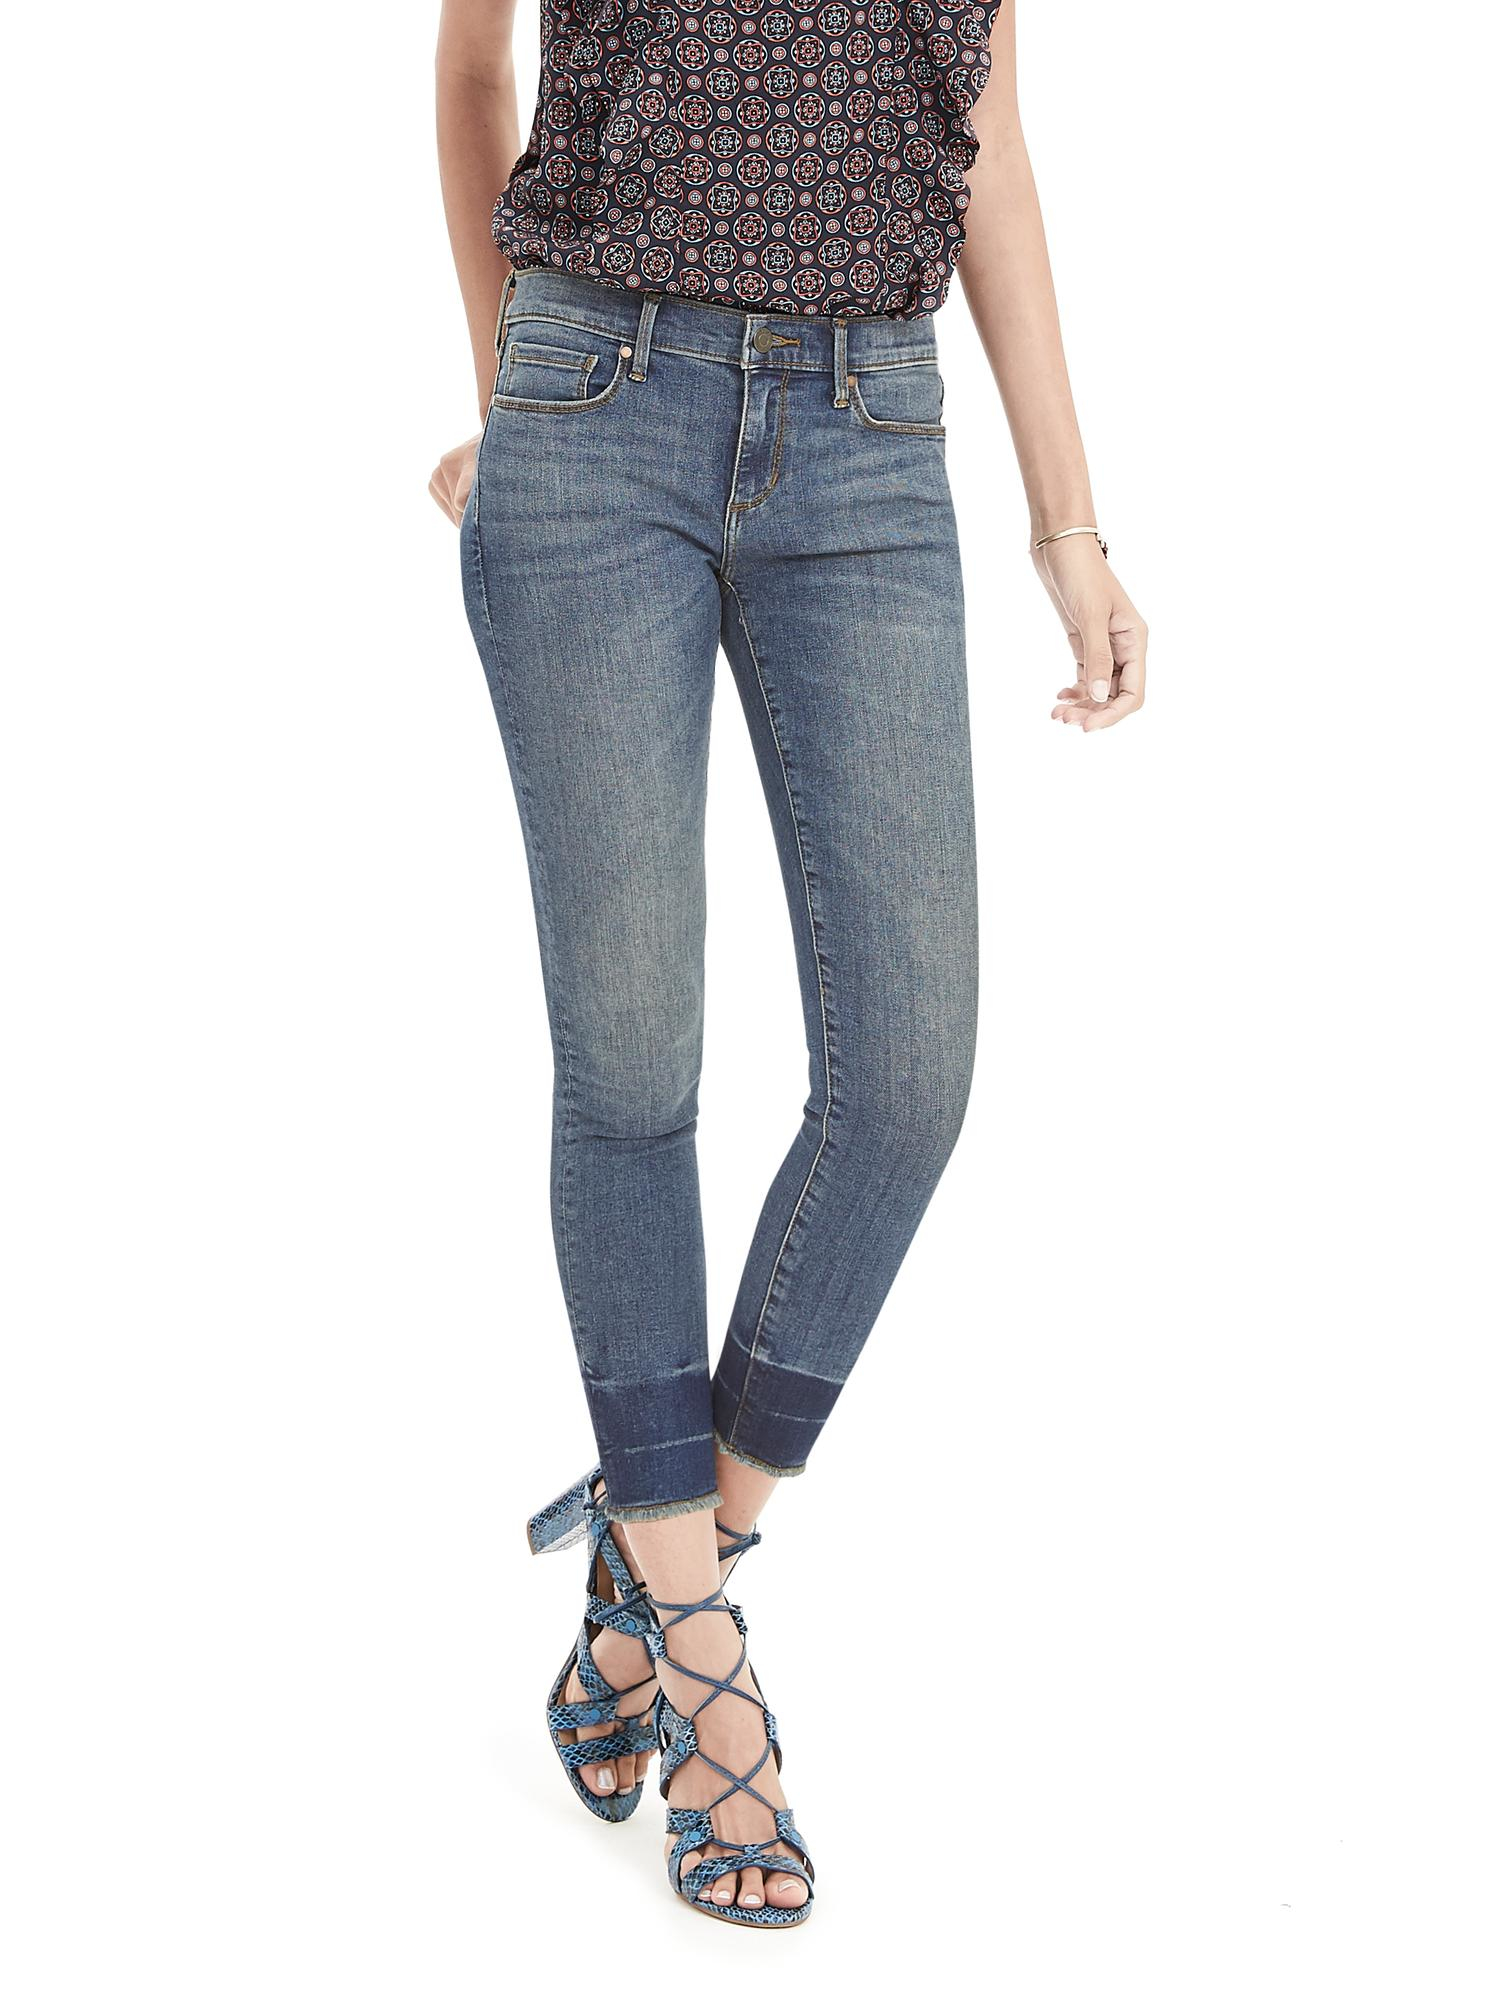 Discover the many styles of our ultra-versatile jeans for women from Banana Republic Factory. Essentials for Any Season in Sleek Styles. Update your must-have wardrobe basics with our exclusive selection of the latest posh jeans for women.